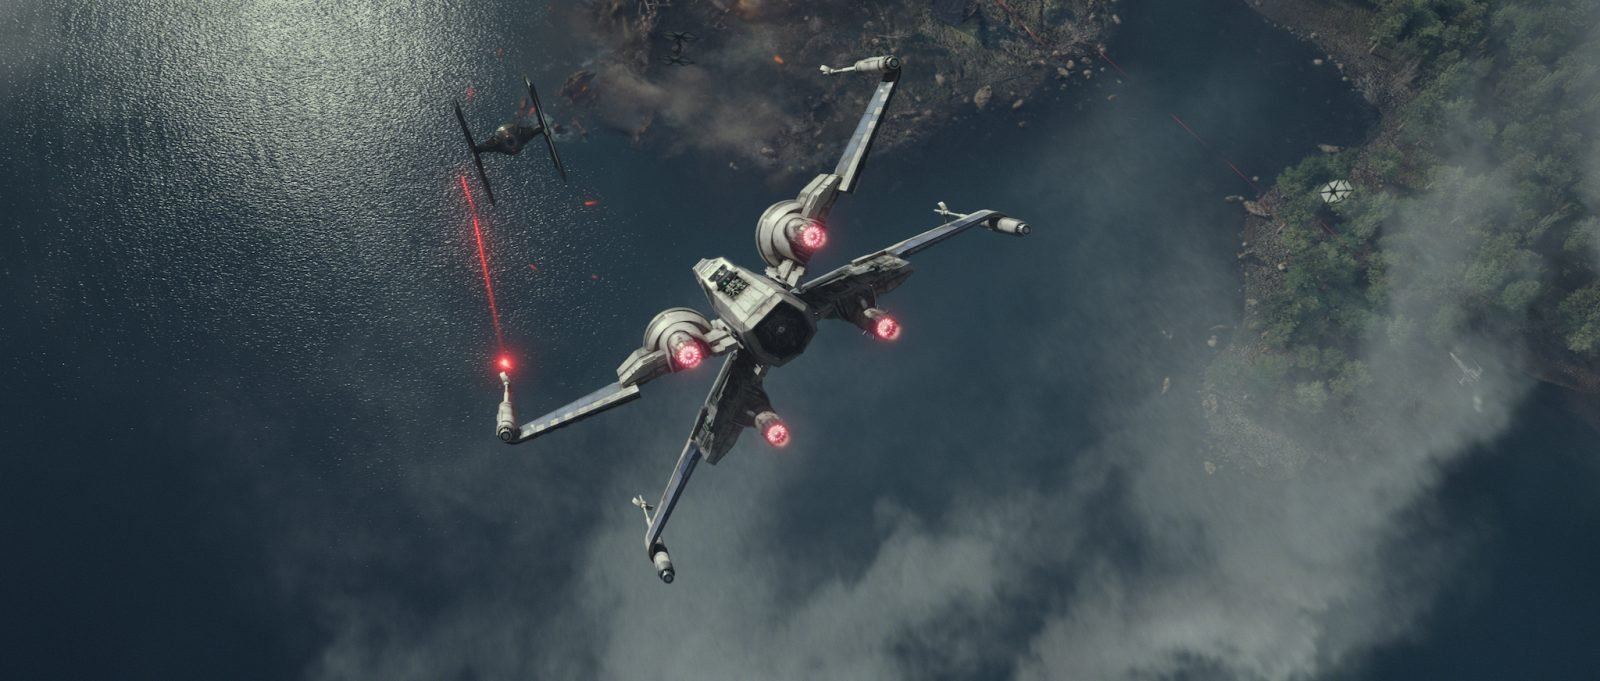 Star Wars VII The Force Awakens 6 - X-Wing shoots Tie Fighter